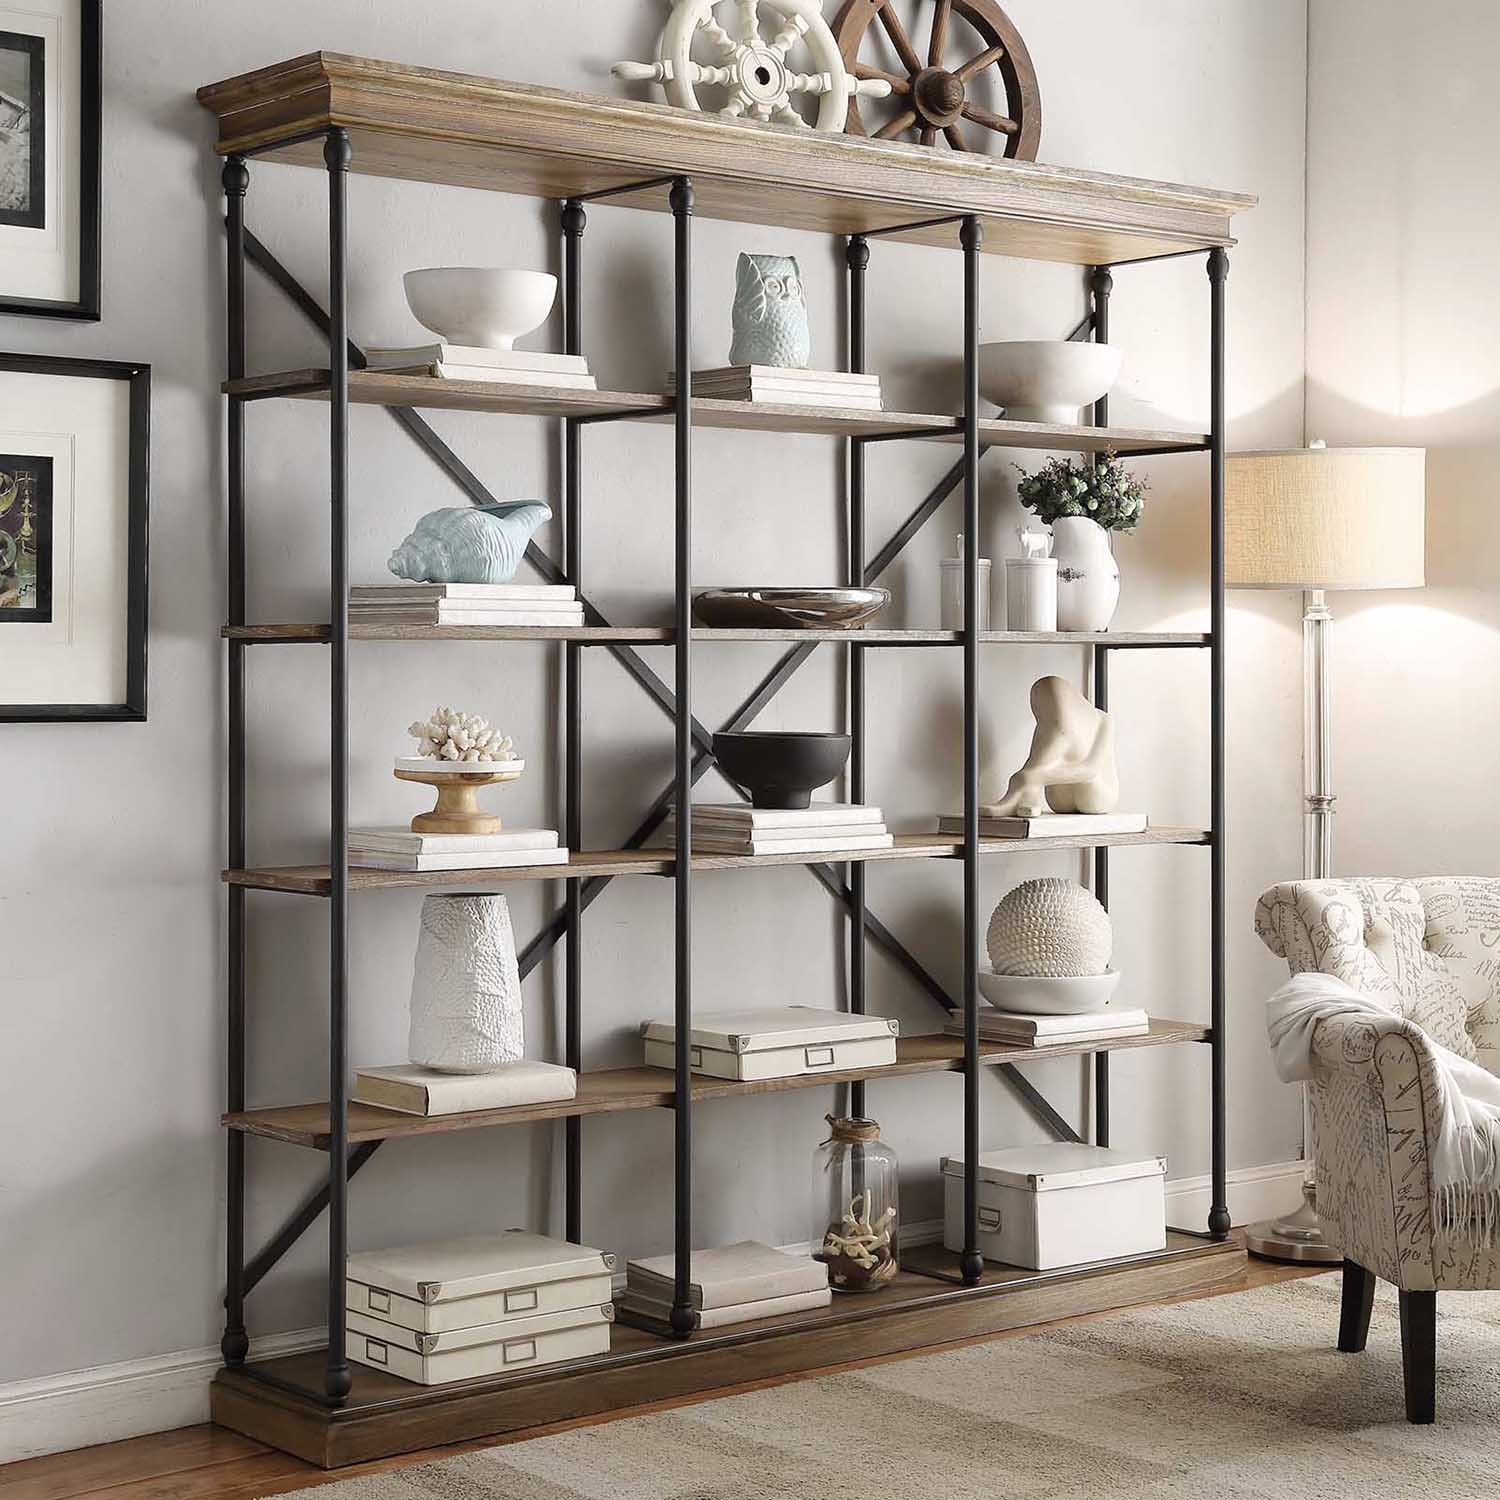 Darby Home Co Deidrian 84 Etagere Bookcase